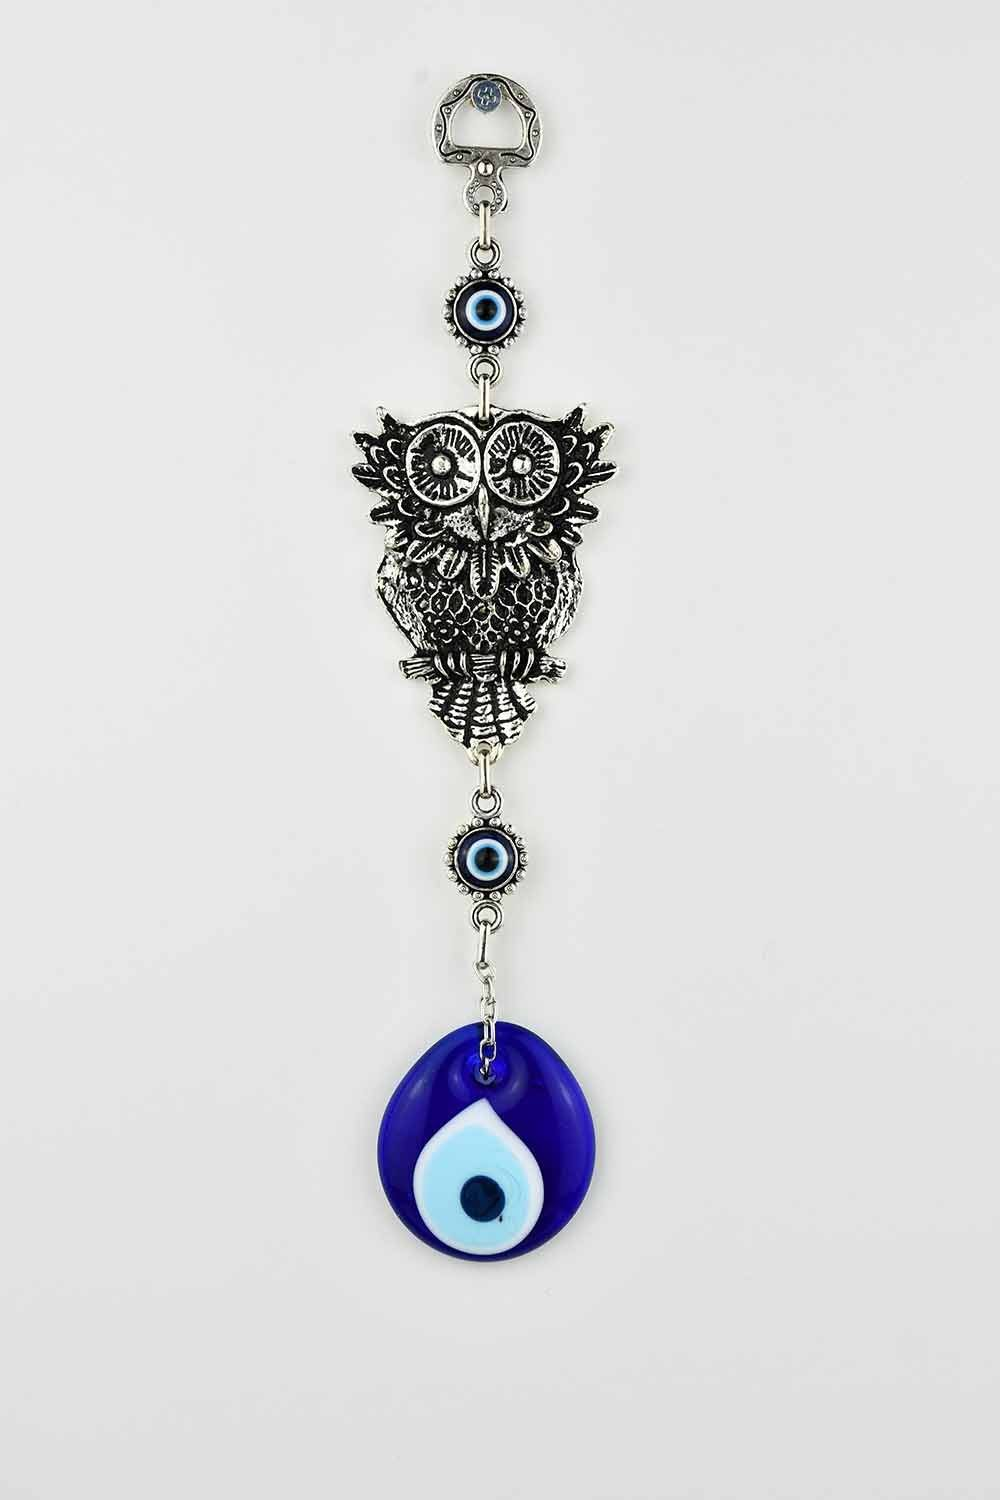 Evil Eye Wall Ornament Baby Owl Small Evil Eye Sydney Grand Bazaar